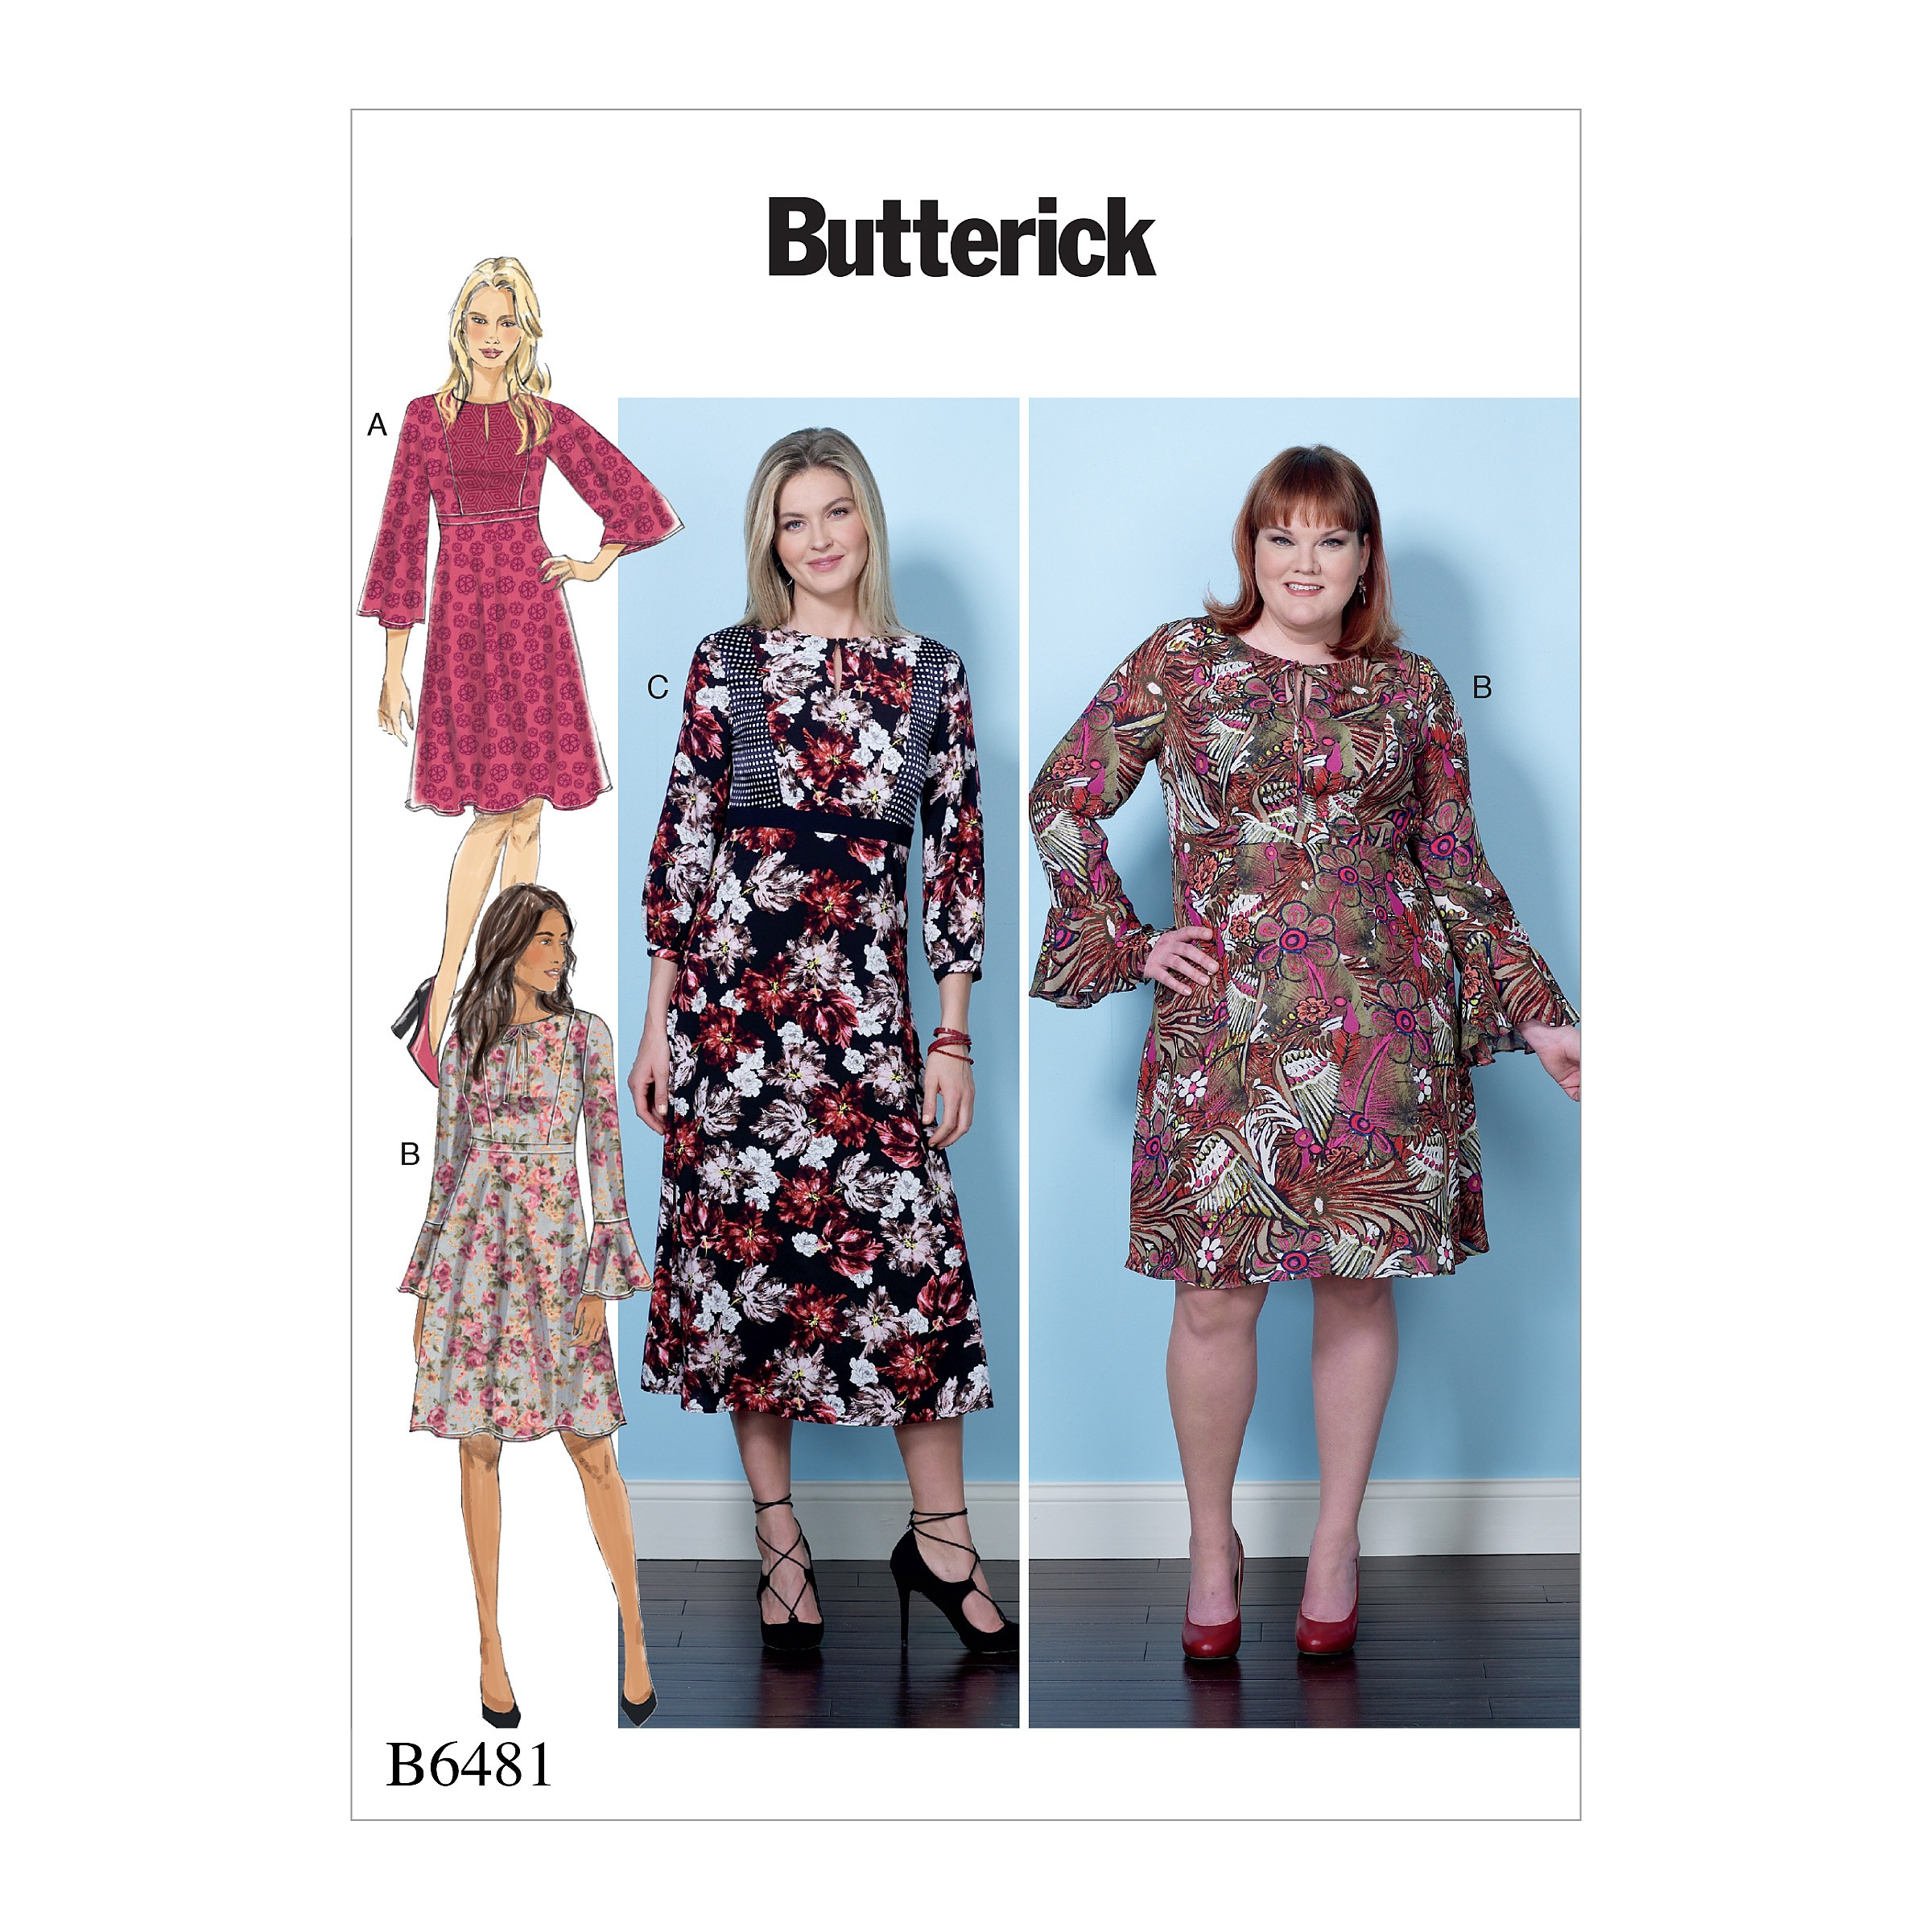 Butterick Sewing Pattern 6481 Misses' Dress with Set-in Waistband Bodice Options